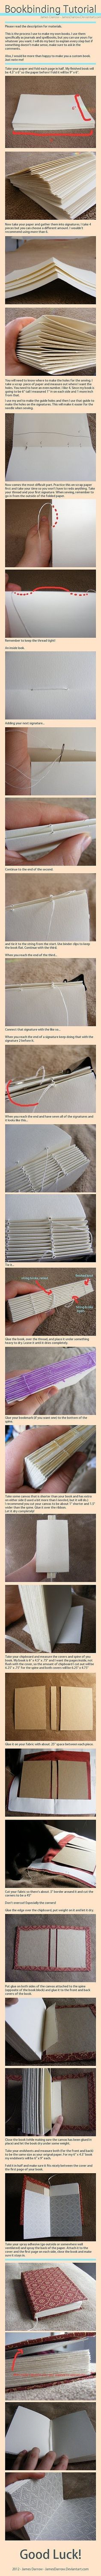 Make your own book. DIY book binding. ~ Looks complicated but cool!